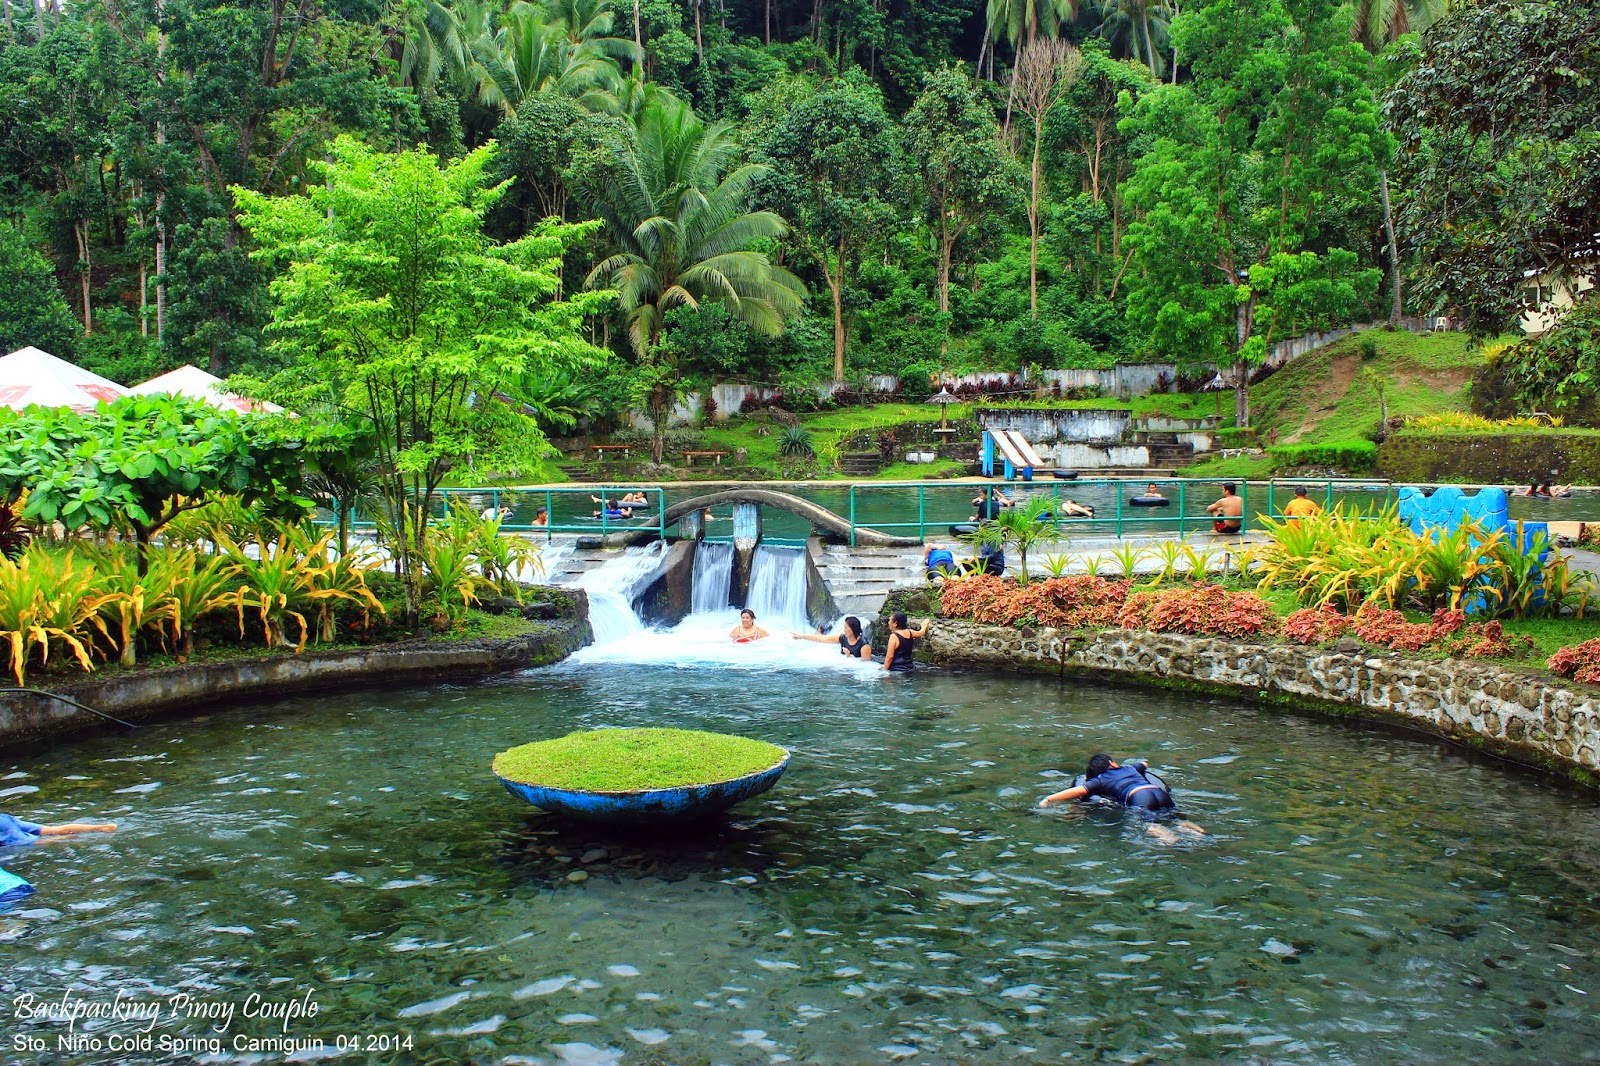 Backpacking Pinoy Couple, Backpacking Philippines, Northern Mindanao, Philippine travel, Camiguin, How to go to Camiguin, Sto. Niño Cold Springs, what to do in camiguin, where to go in camiguin